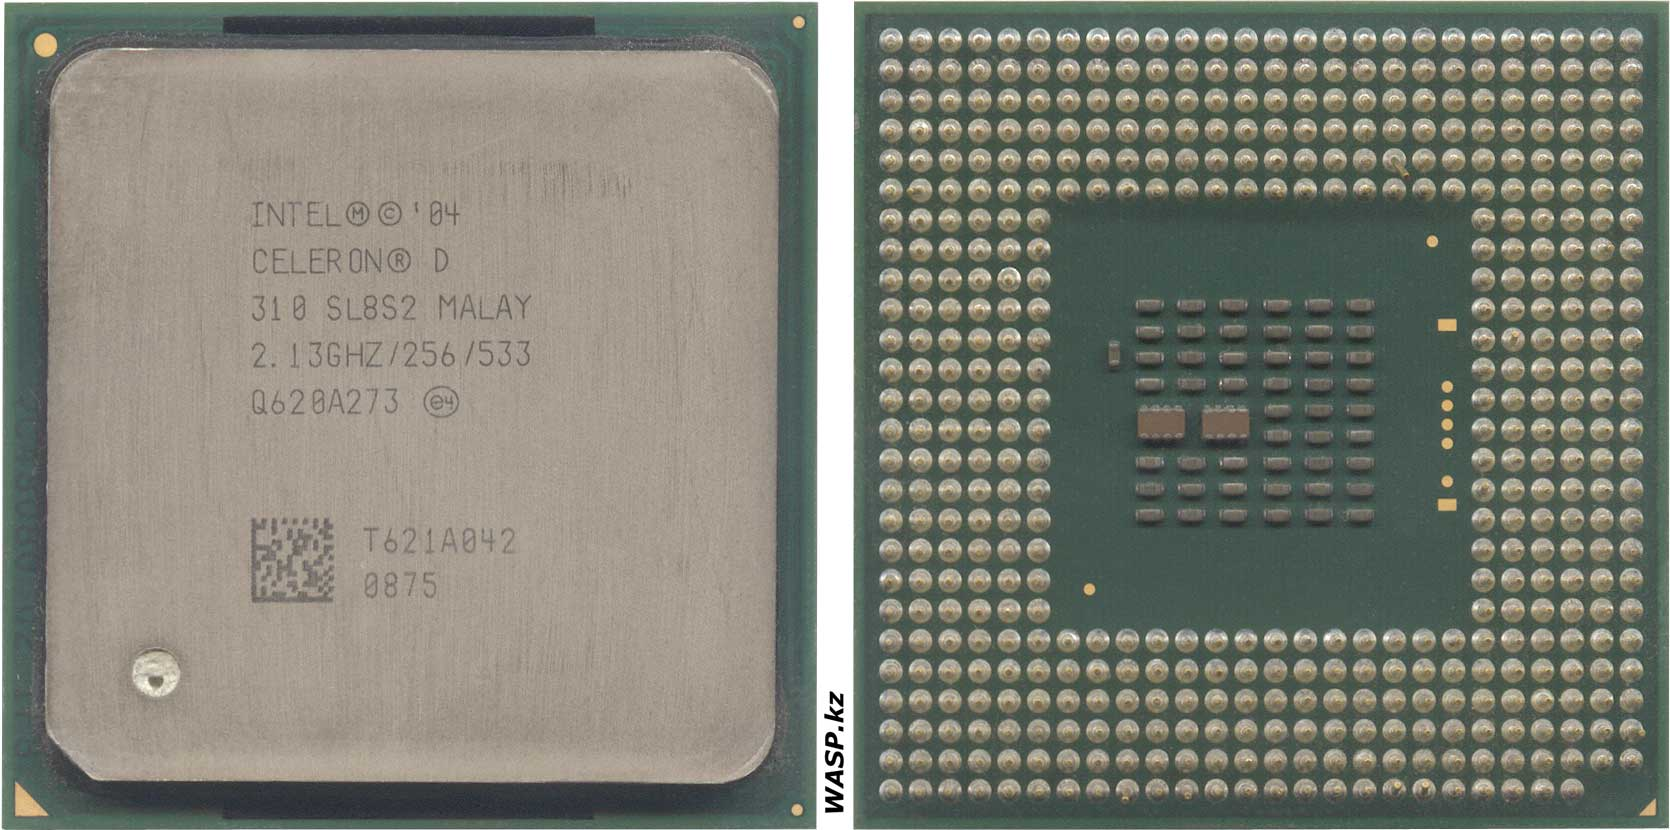 Intel Celeron D Processor 310 характеристики